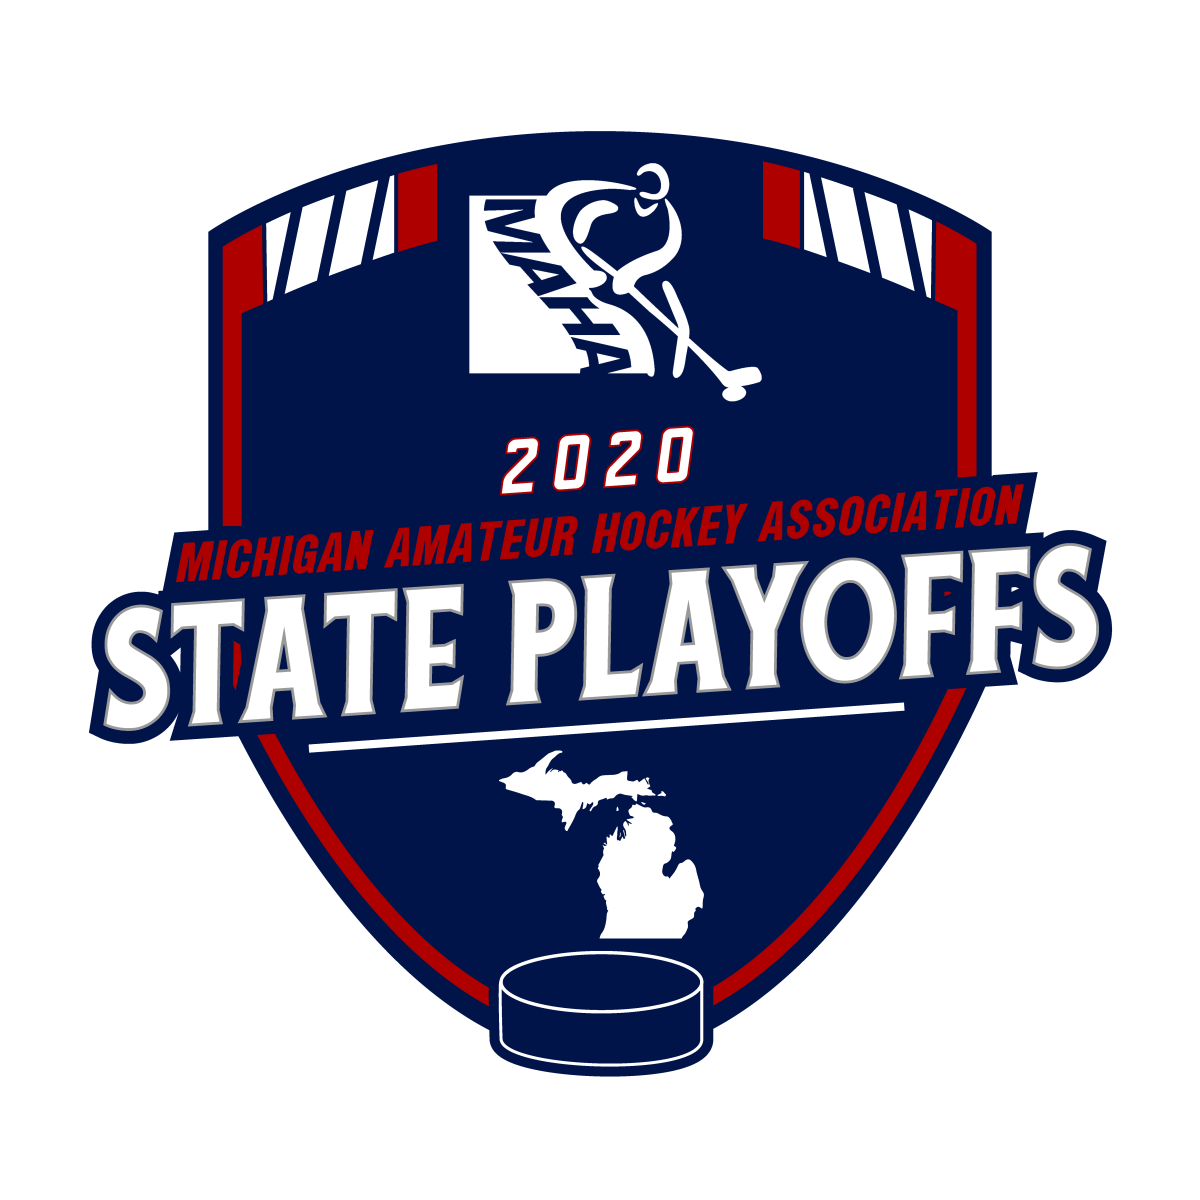 MAHA 2020 state playoffs logo